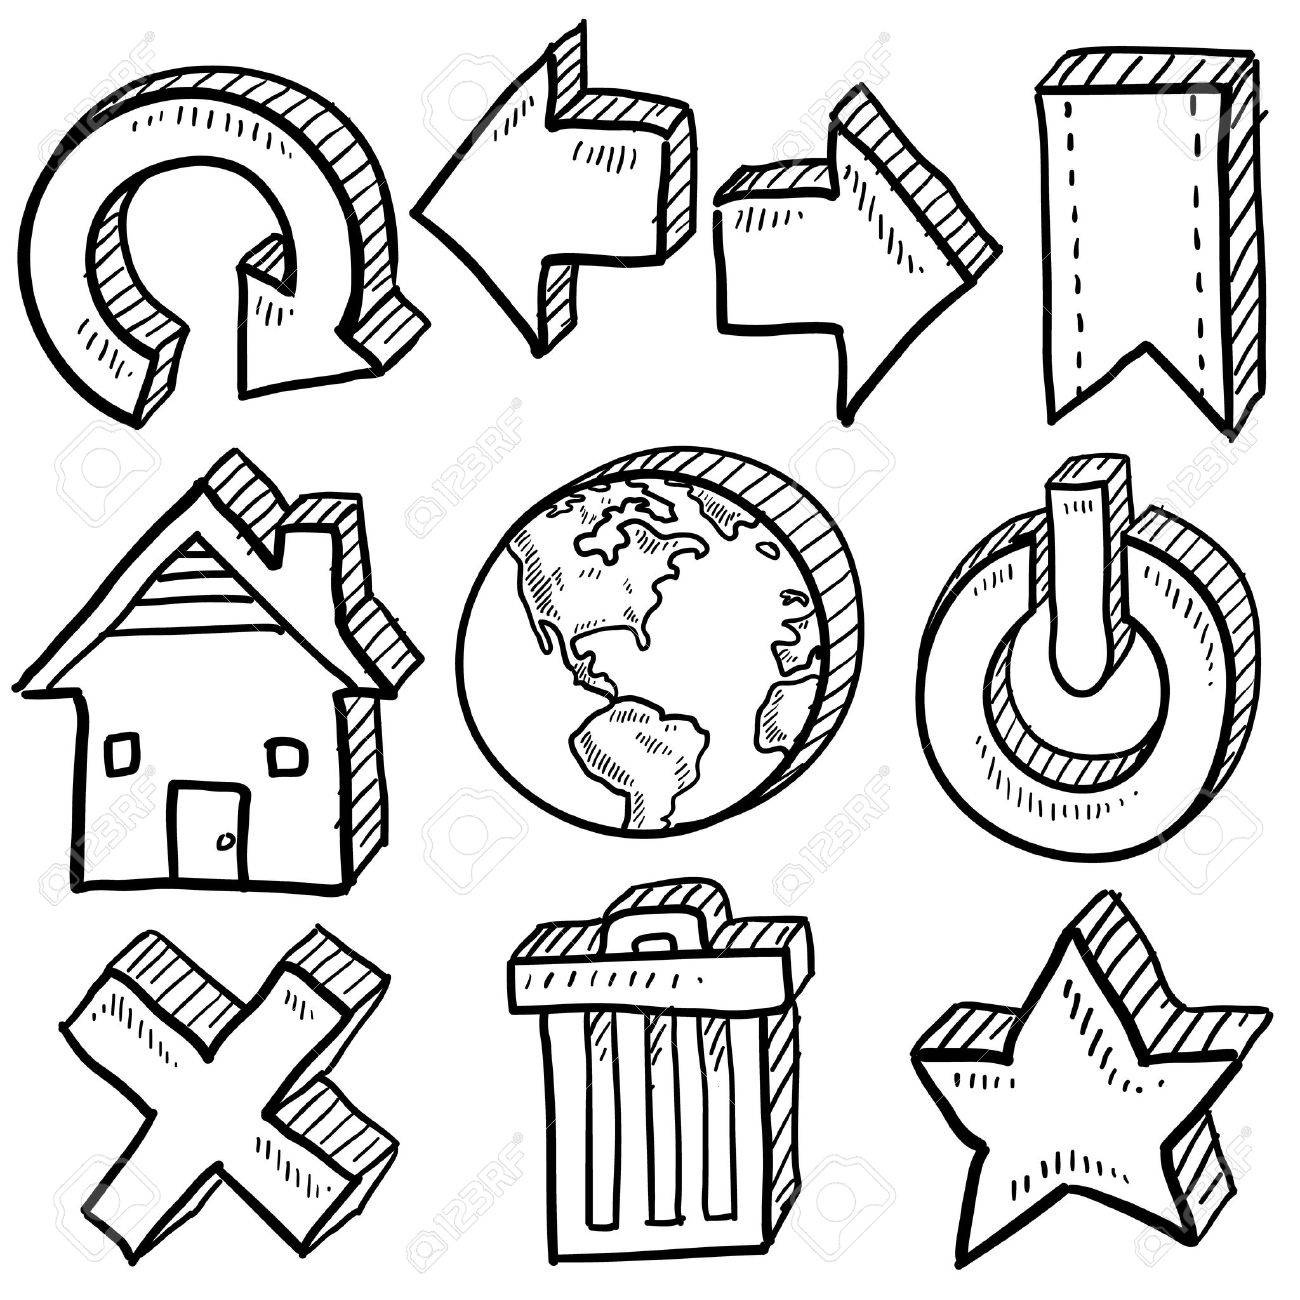 Doodle style internet symbol set that includes arrows, refresh, home, trash, close, favorite, and power icons Stock Vector - 14460869